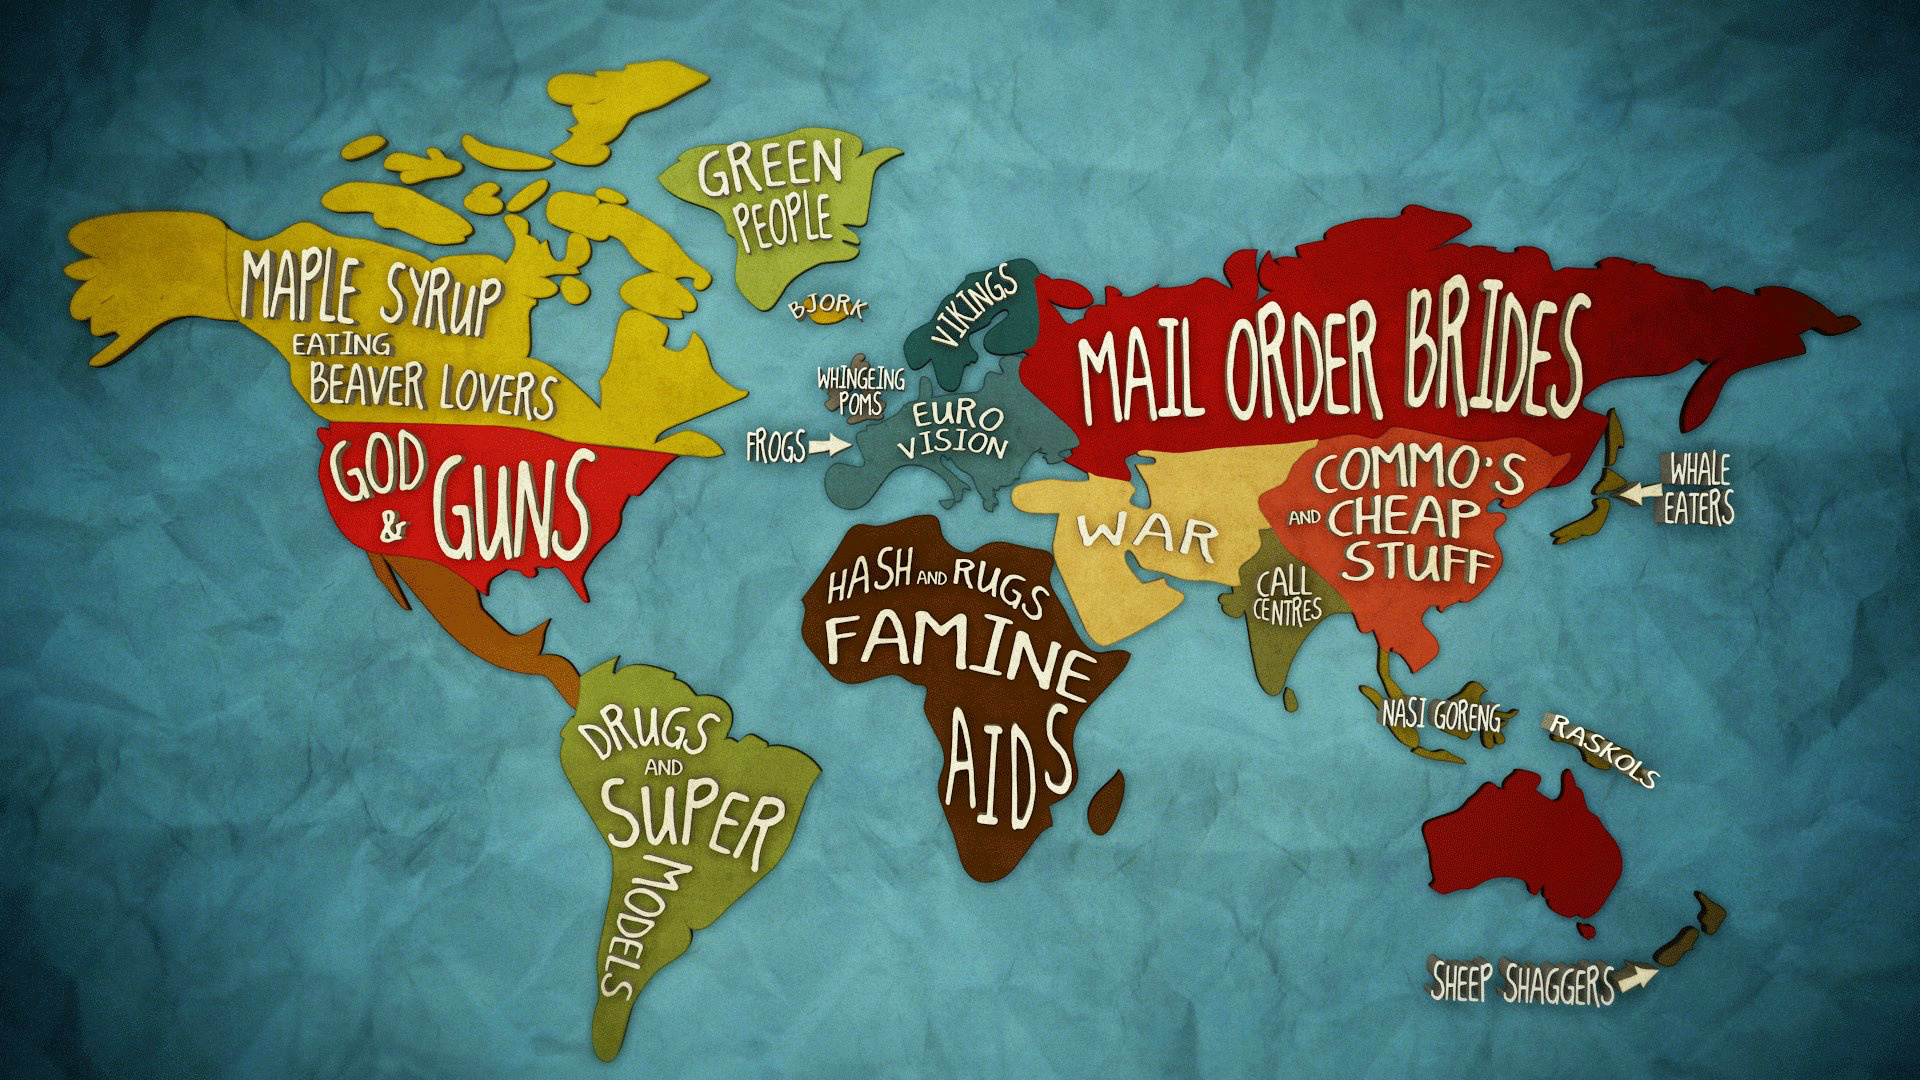 Check out this brilliant Global Stereotype map from the ABC. What should Aus say? (& is Canada 'eating beaver'?) *ahem* http://t.co/OXIGU5MZ